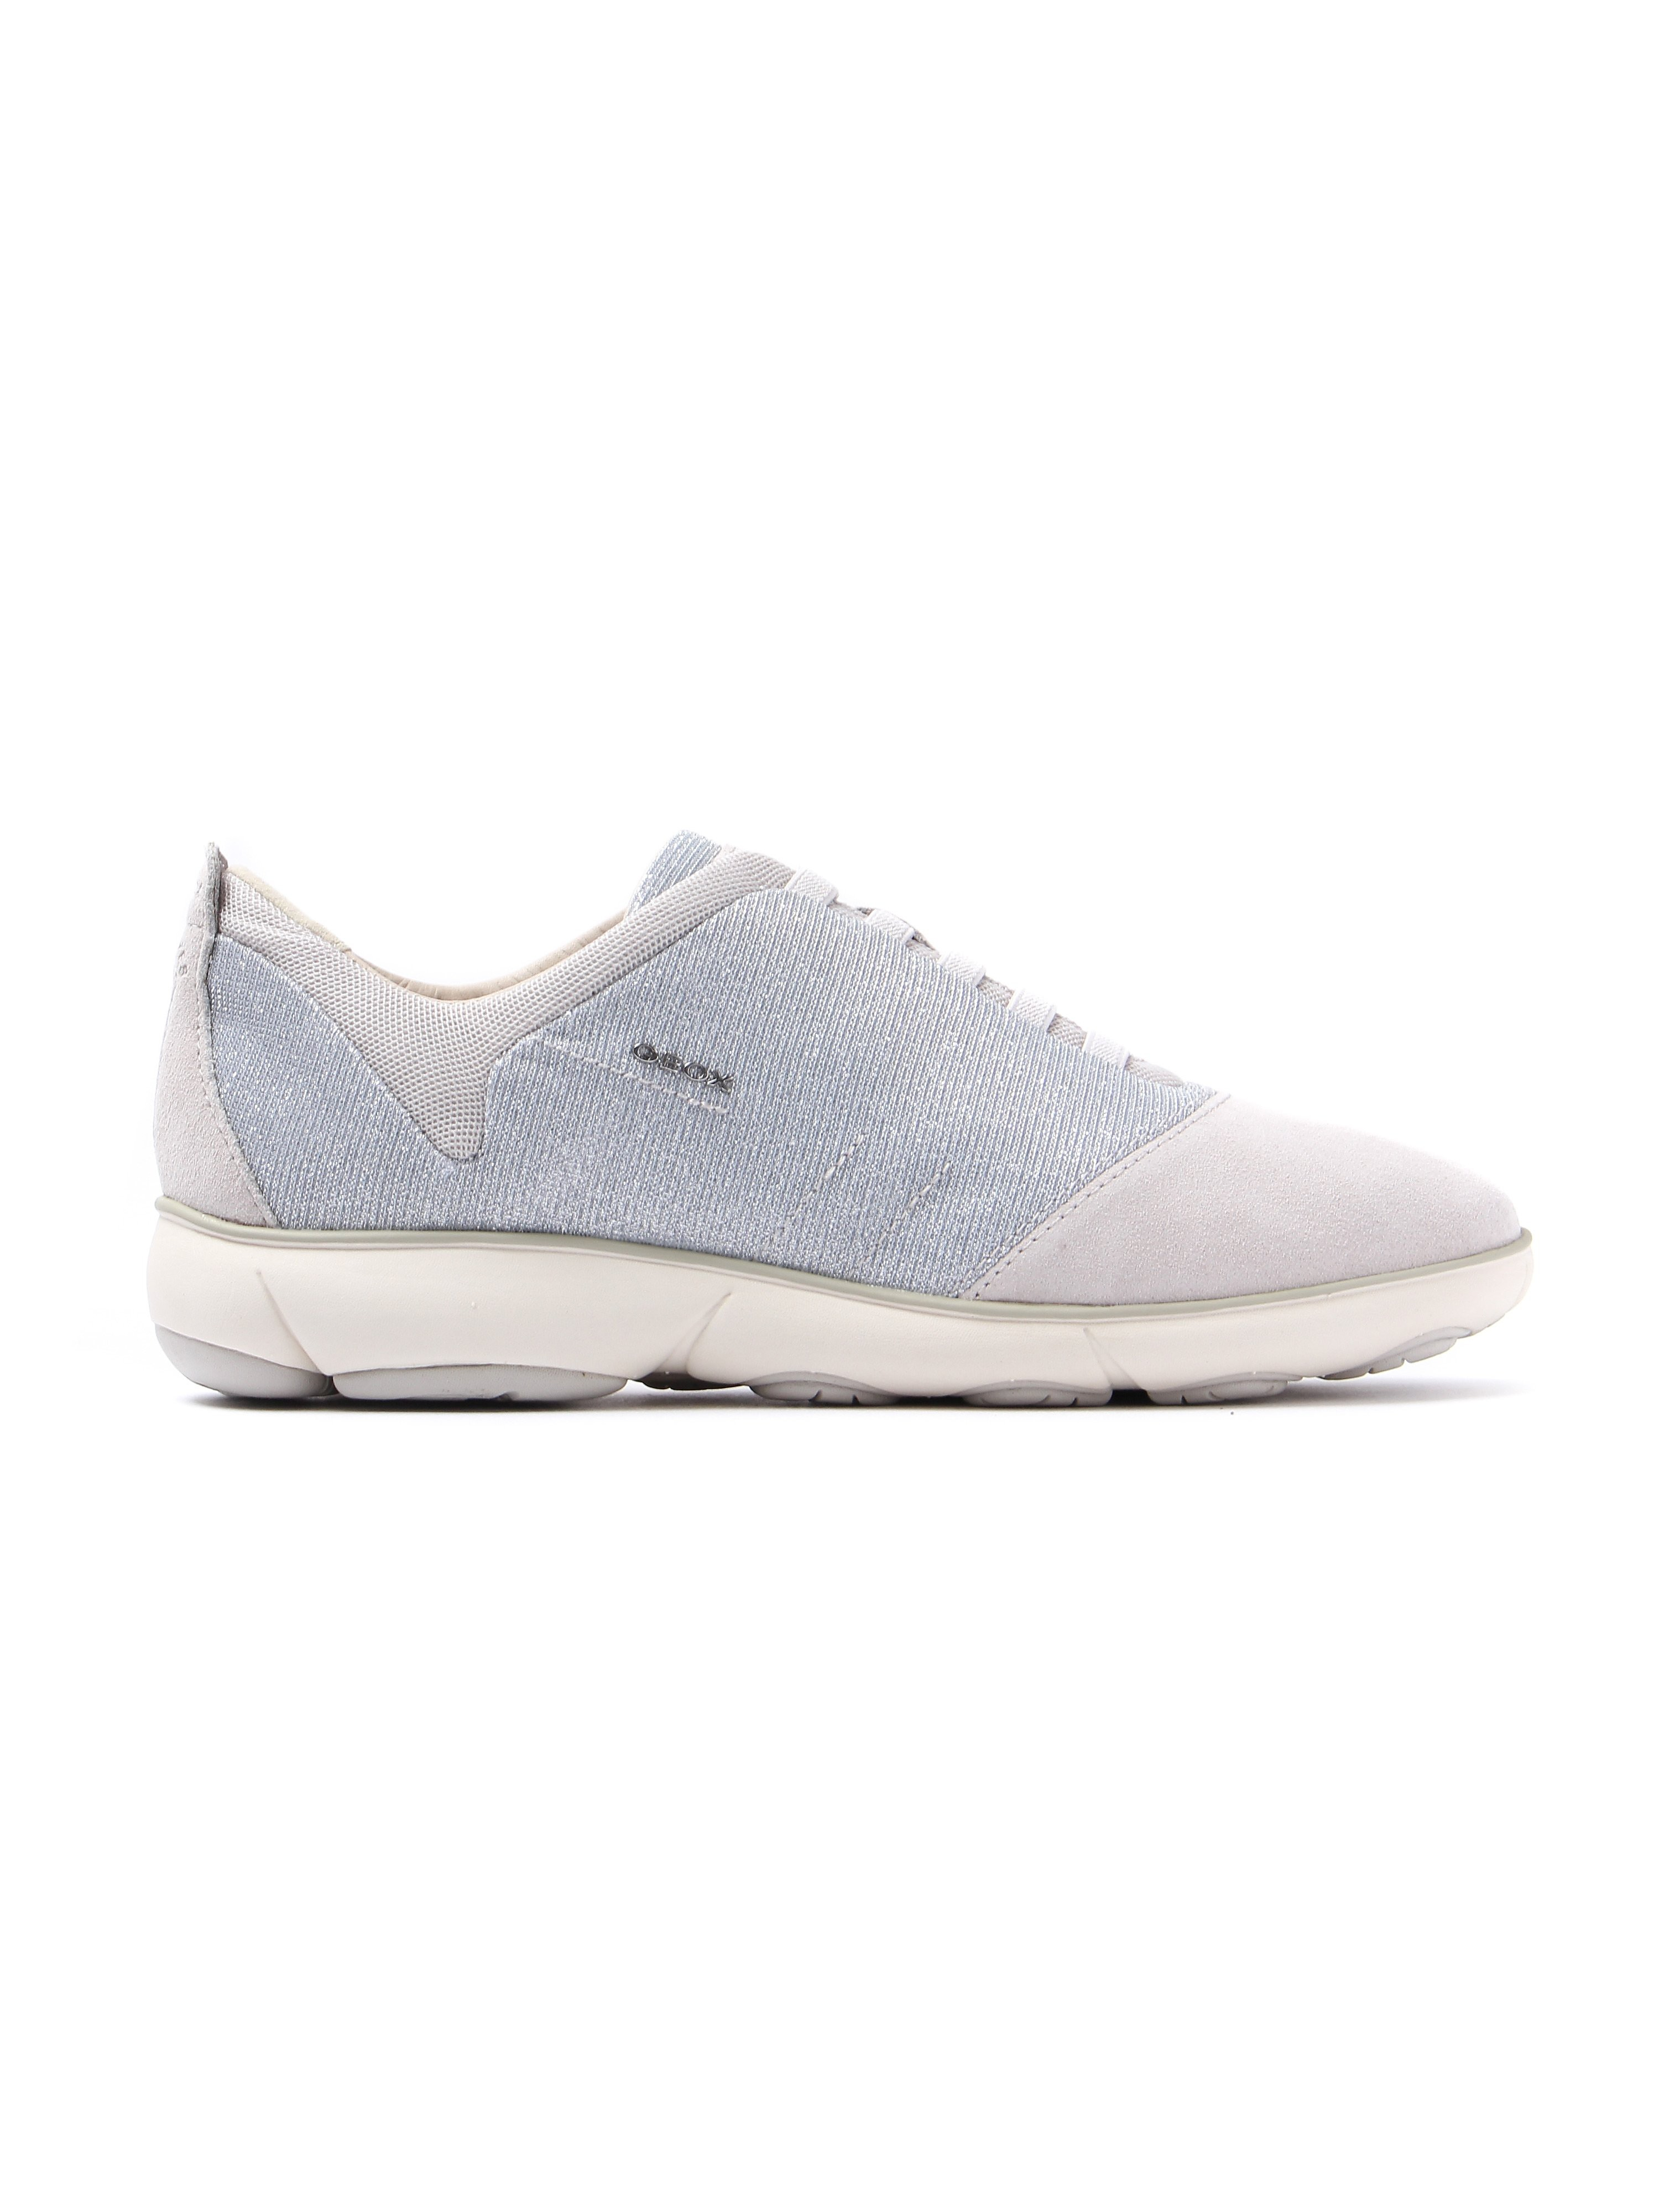 Geox Women's Nebula Glitter & Suede Trainers - Silver & Off White